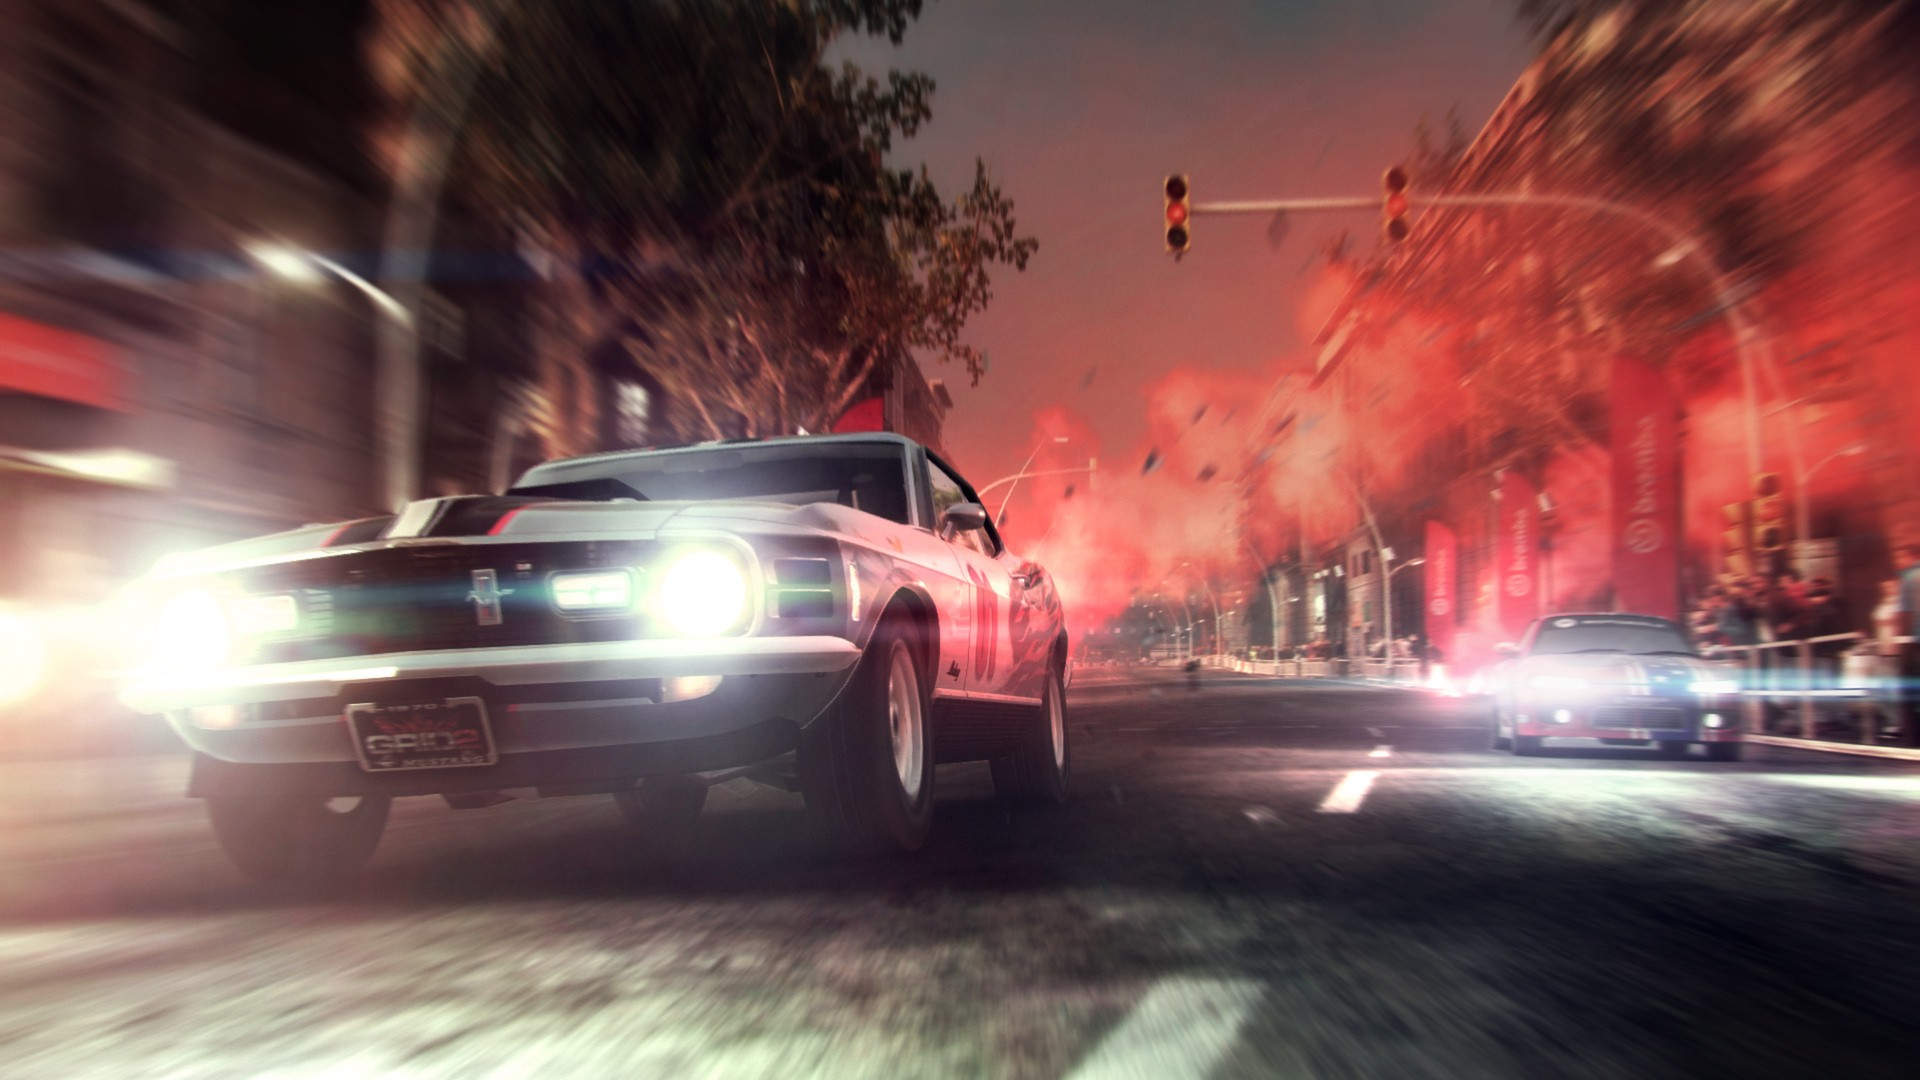 Grid 2 Game Wallpaper High Resolution Pics: Video Games Cars Muscle Cars Ford Mustang Races Grid 2